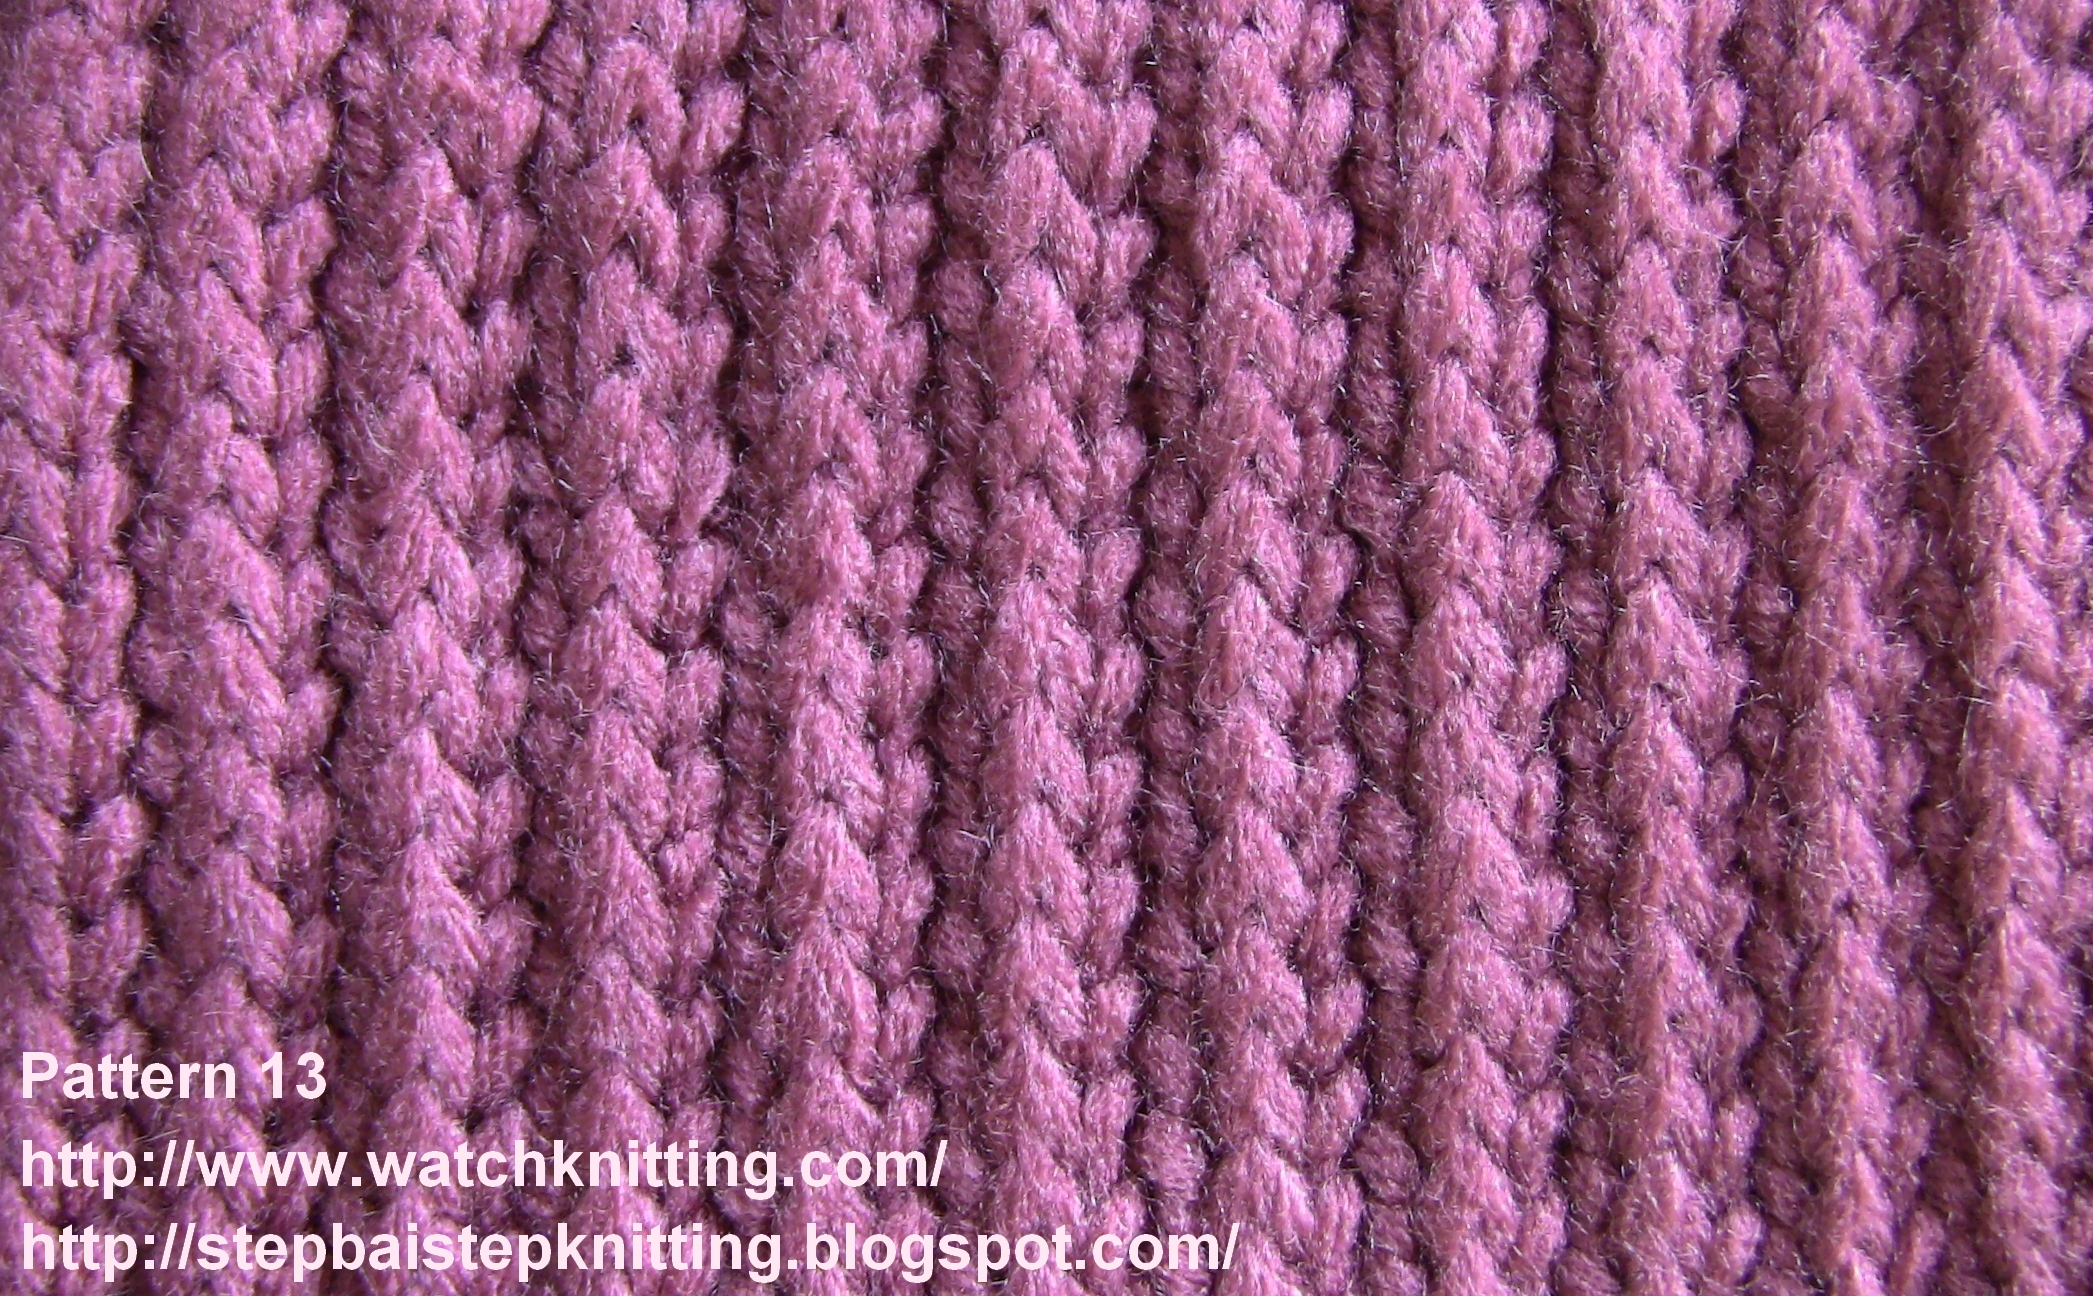 Patterns For Knitting : Simple Knitting models by basic stitches - Pattern 13 (Striped Model)